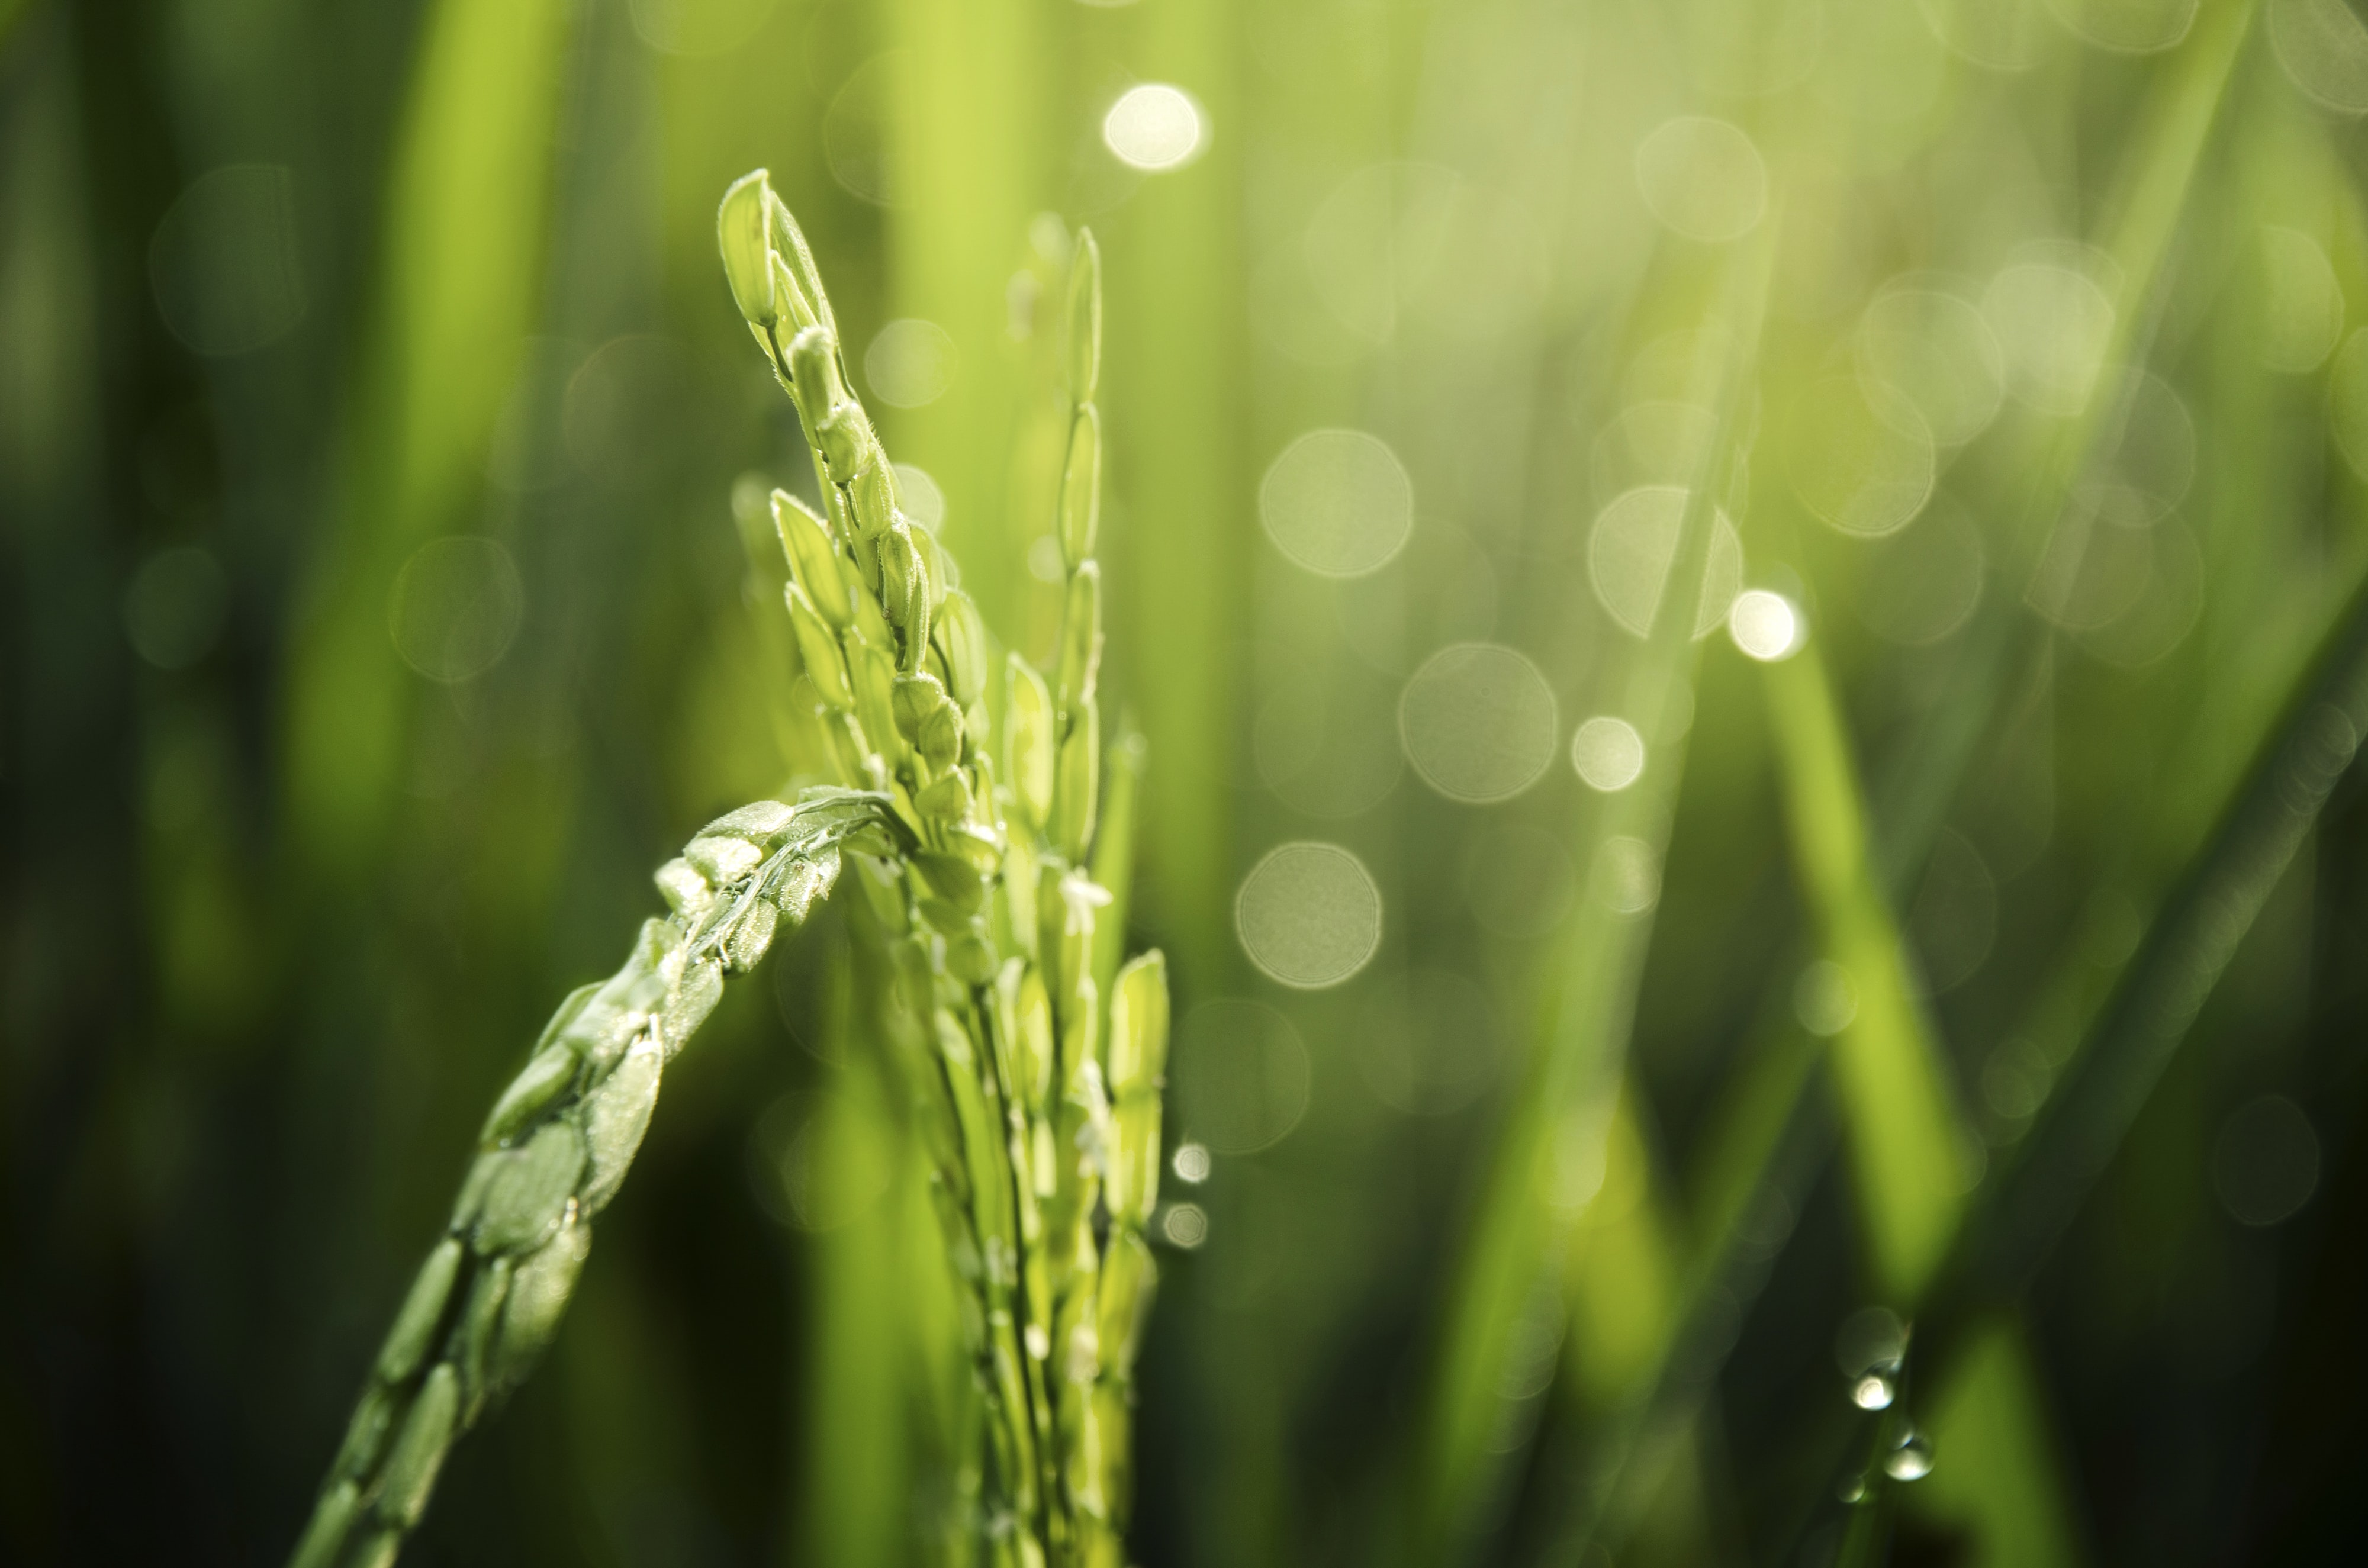 Cropping photography Change Meaning Macro Photography Of Rice With Bokeh Light Background Photography With Miss Wilson Weebly 500 Crop Pictures hd Download Free Images On Unsplash